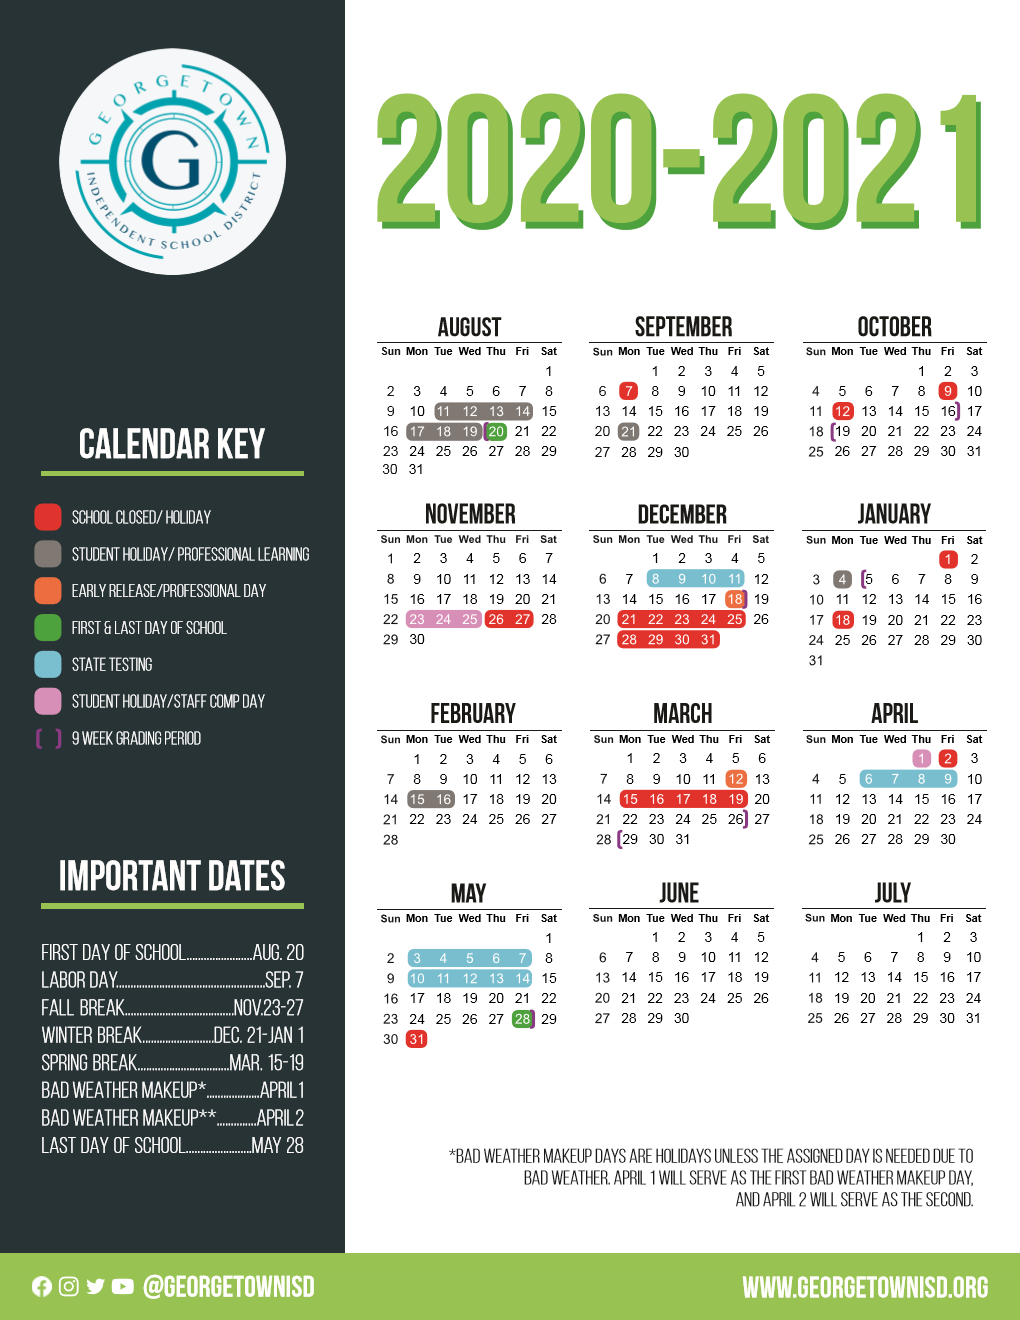 Gisd Calendar 2022 23.G E O R G E T O W N I S D C A L E N D A R 2 0 2 0 2 0 2 1 Zonealarm Results